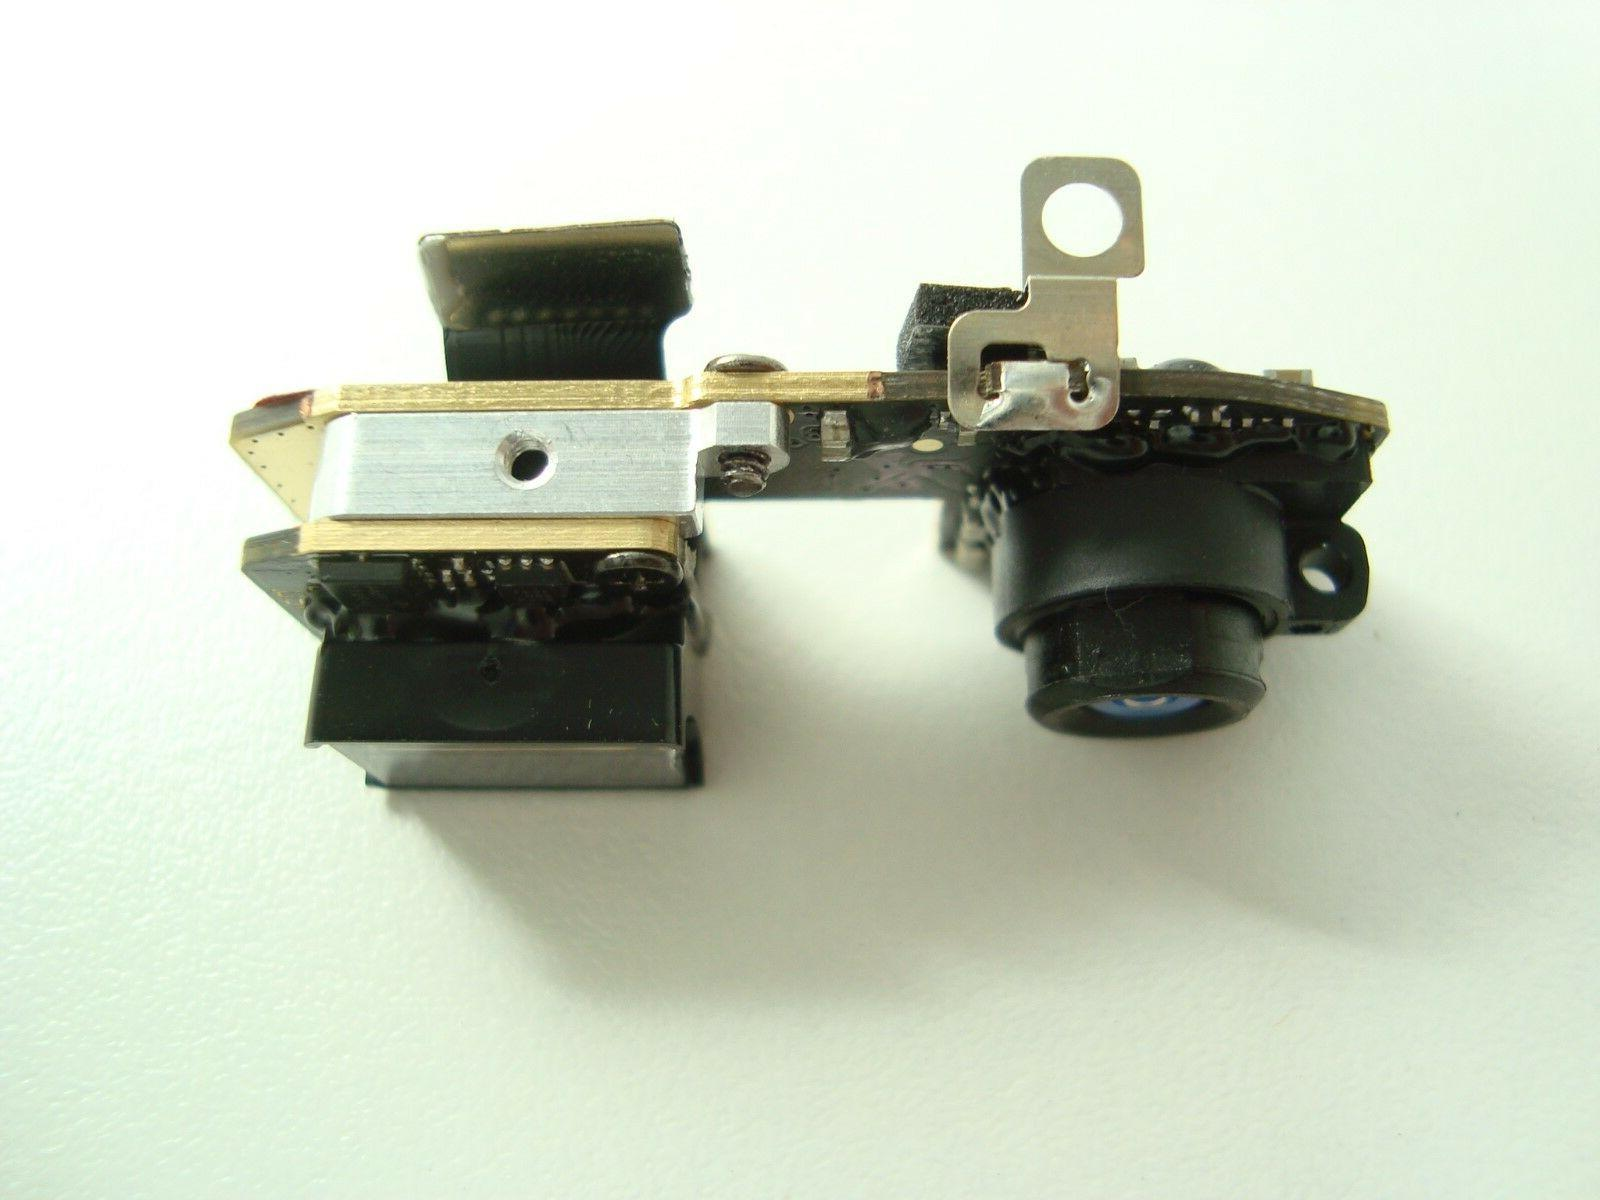 Original Component Vision Obstacle For DJI Spark Repair Parts